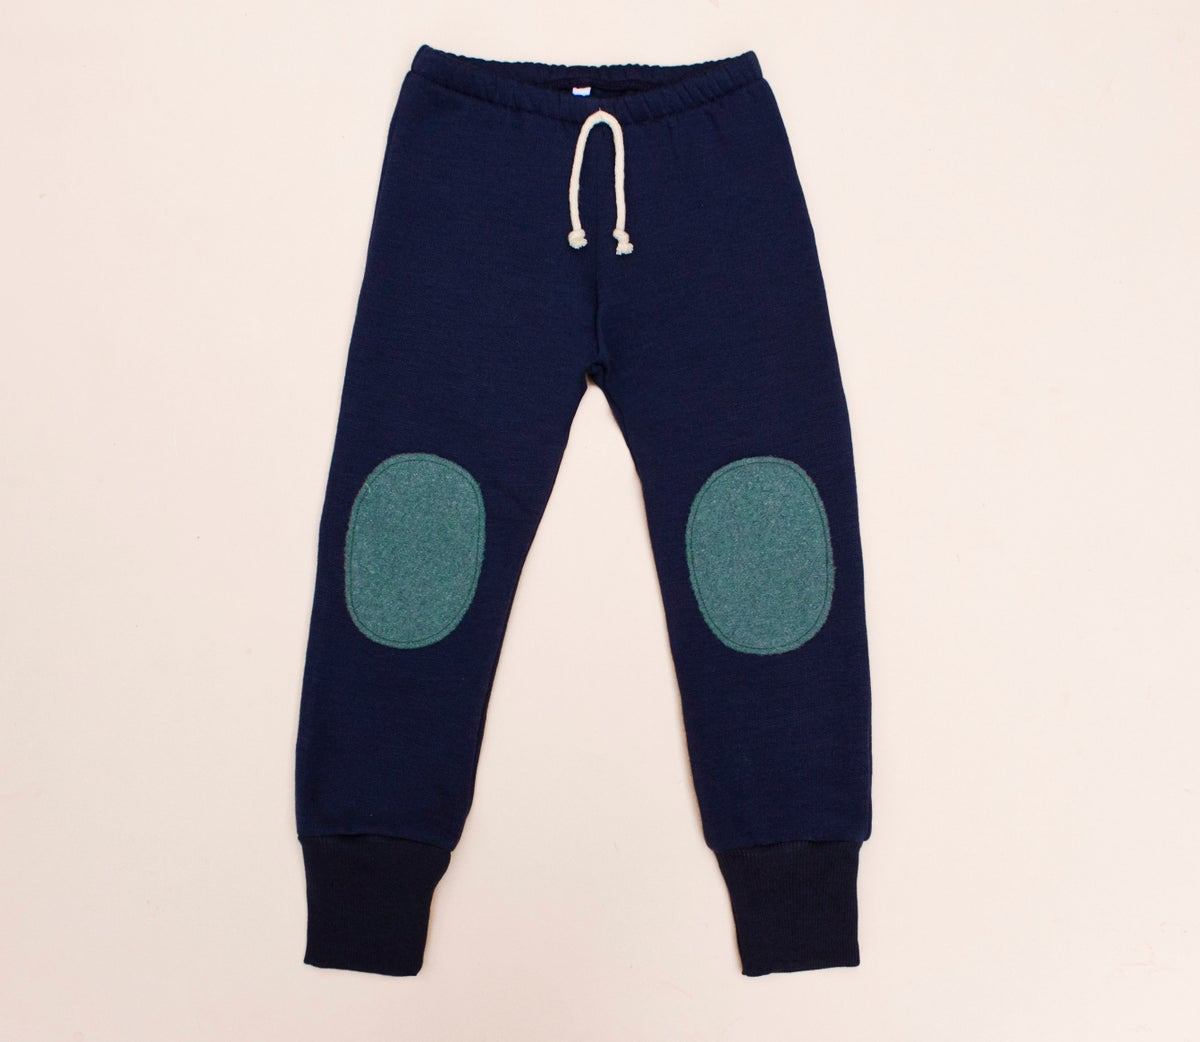 Image of Bluegum merino fleece pants